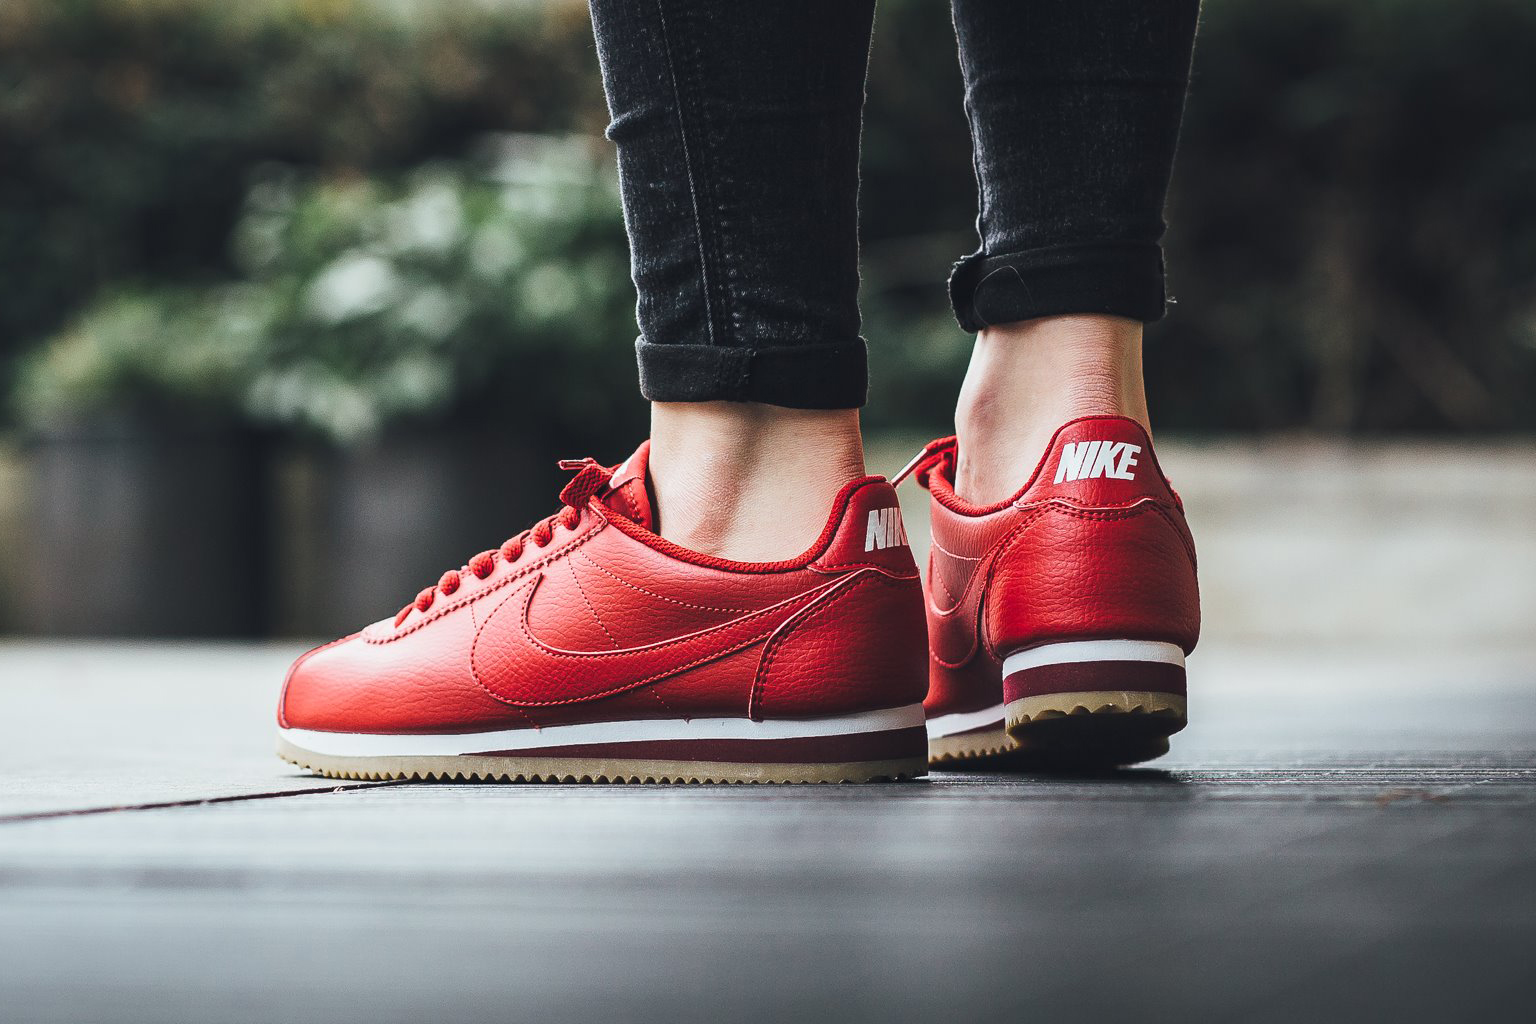 Nike Classic Cortez Leather Gym Red